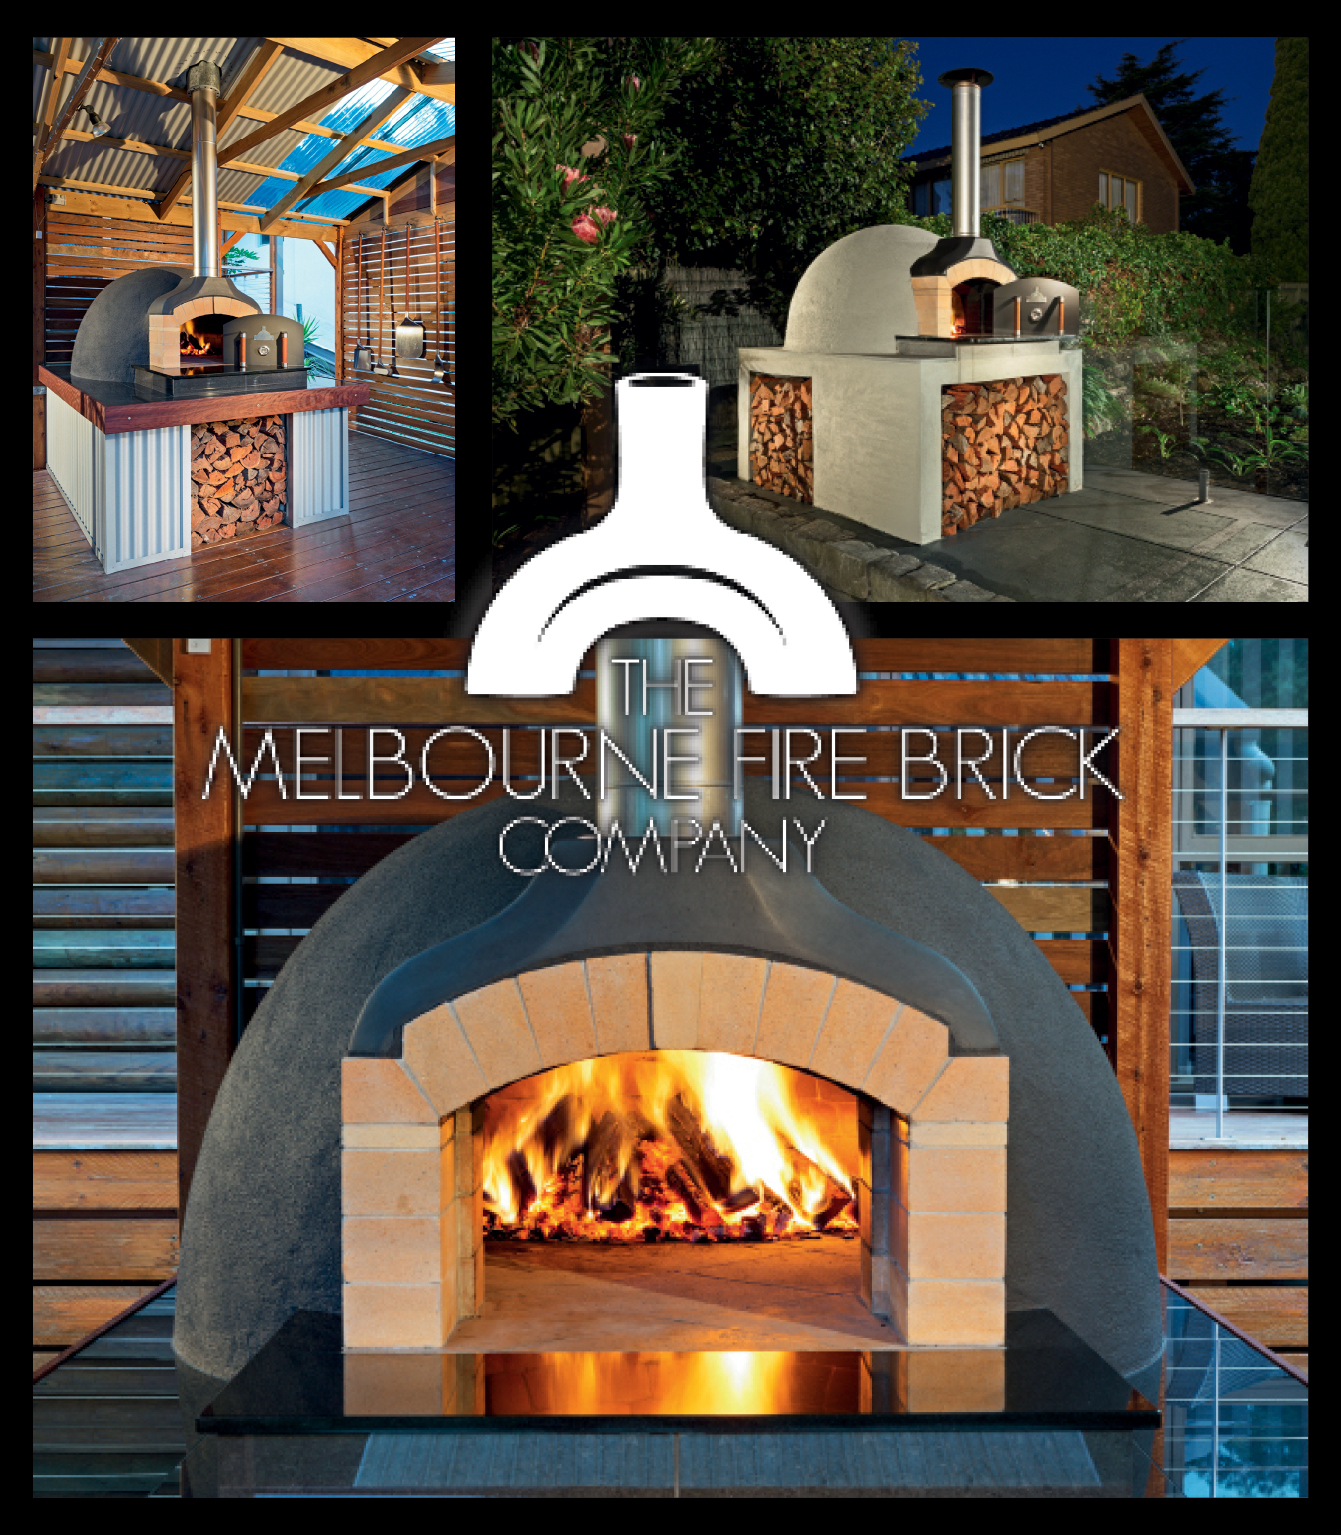 the melbourne fire brick company ods